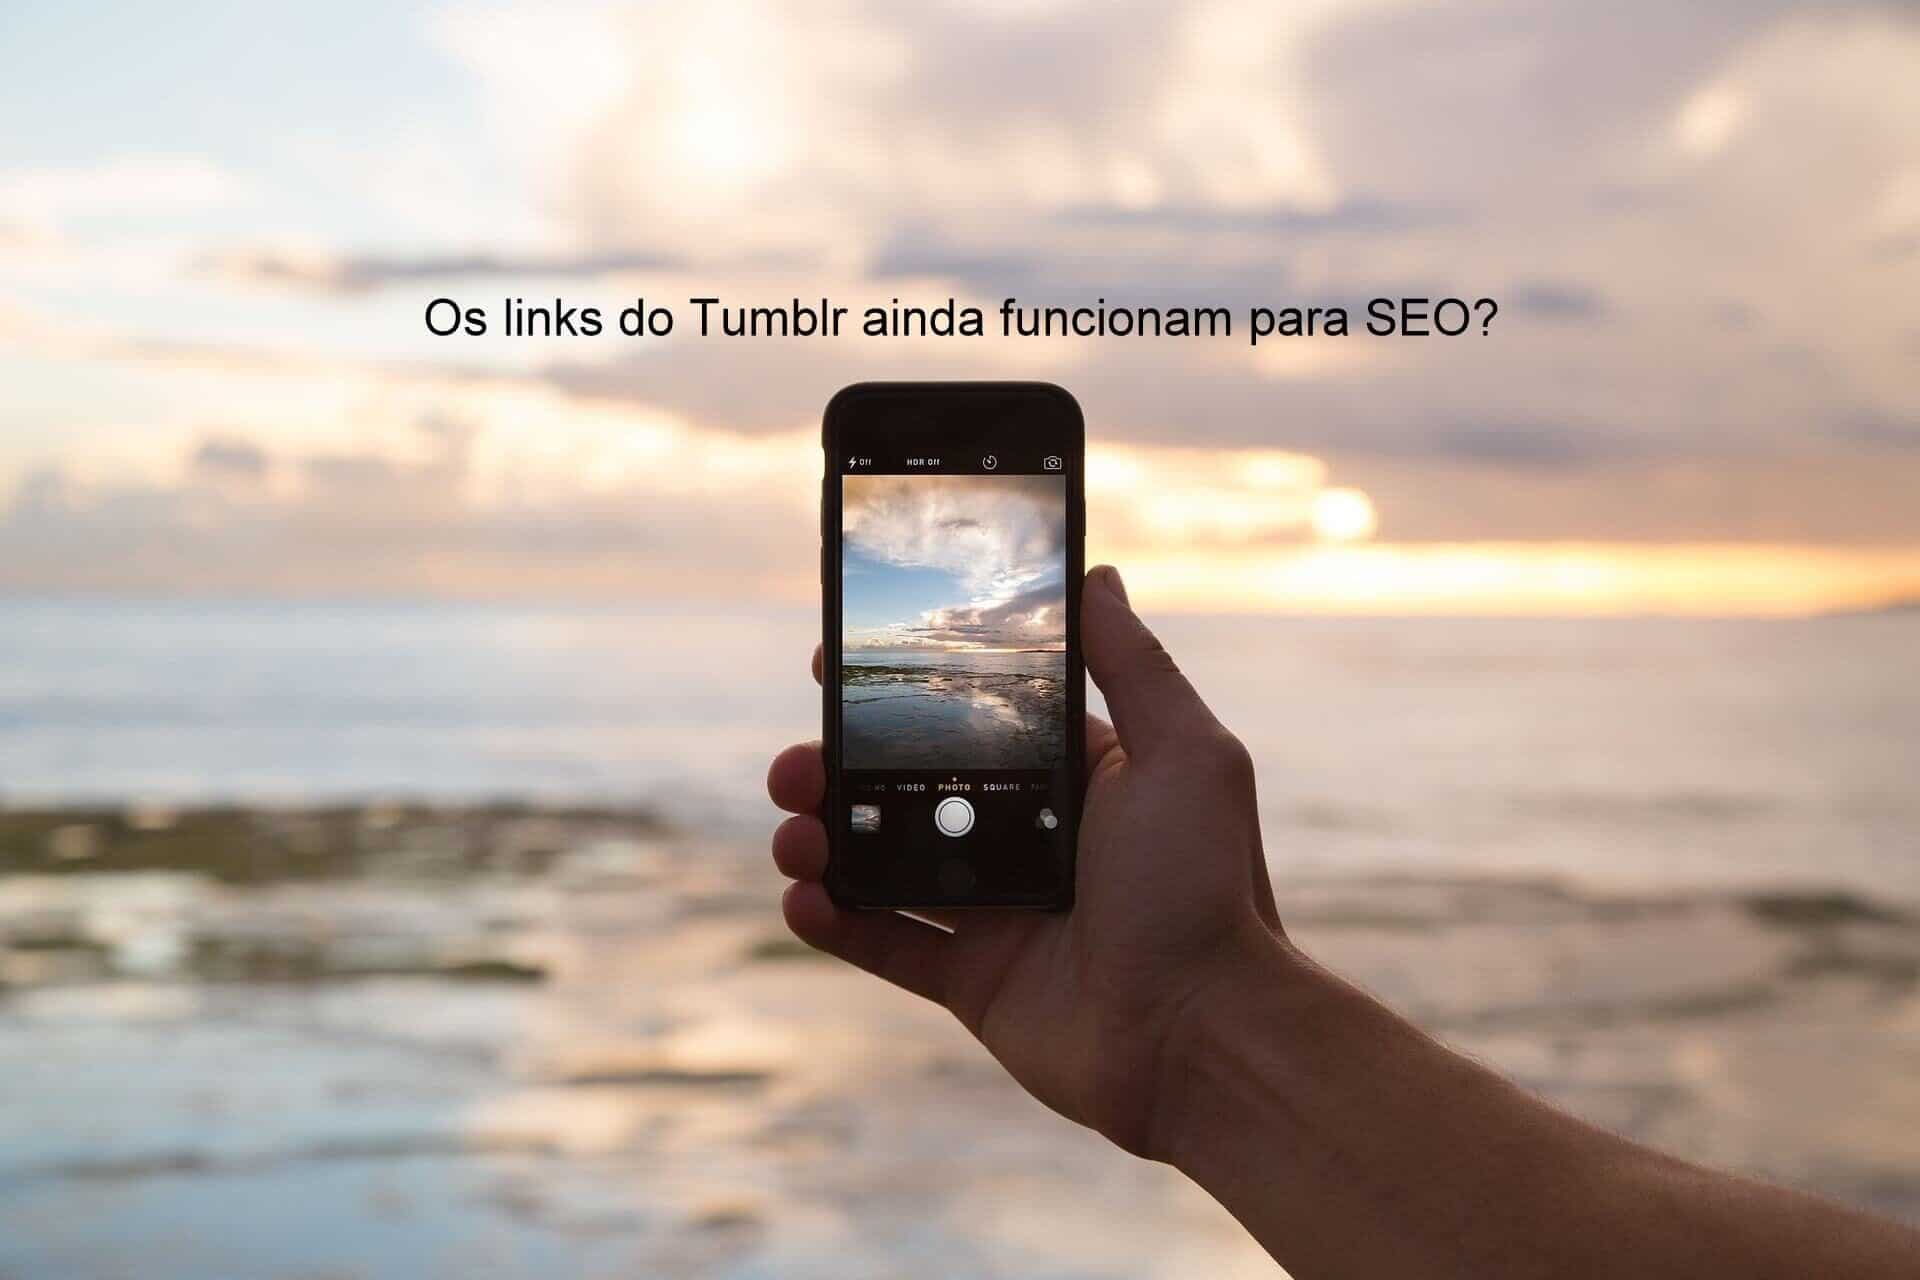 Link building com Tumblr – Os links do Tumblr ainda funcionam para SEO?